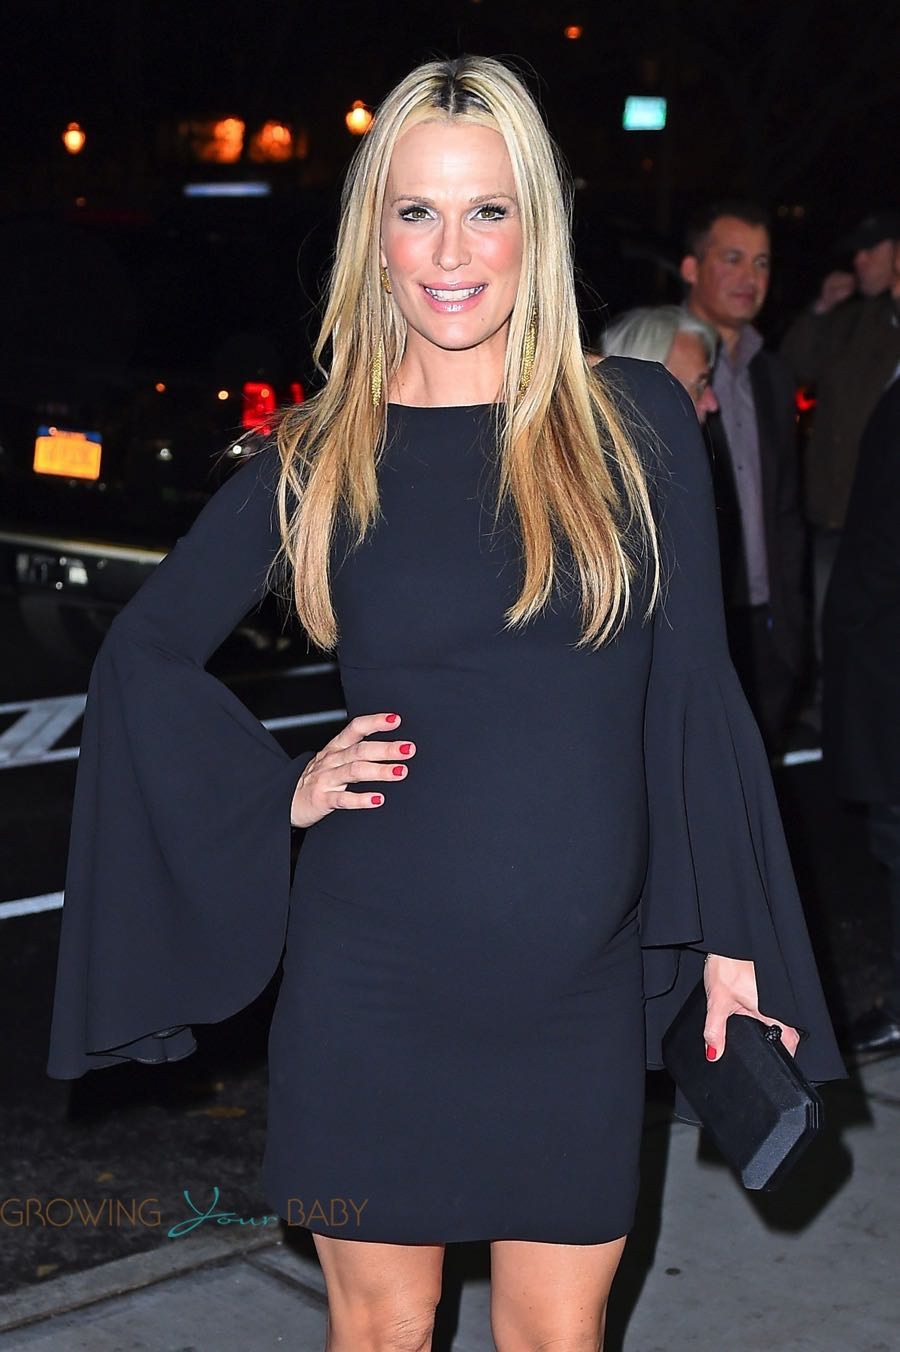 1520915ced2a8 Very pregnant Molly Sims and Scott Stuber at the screening of